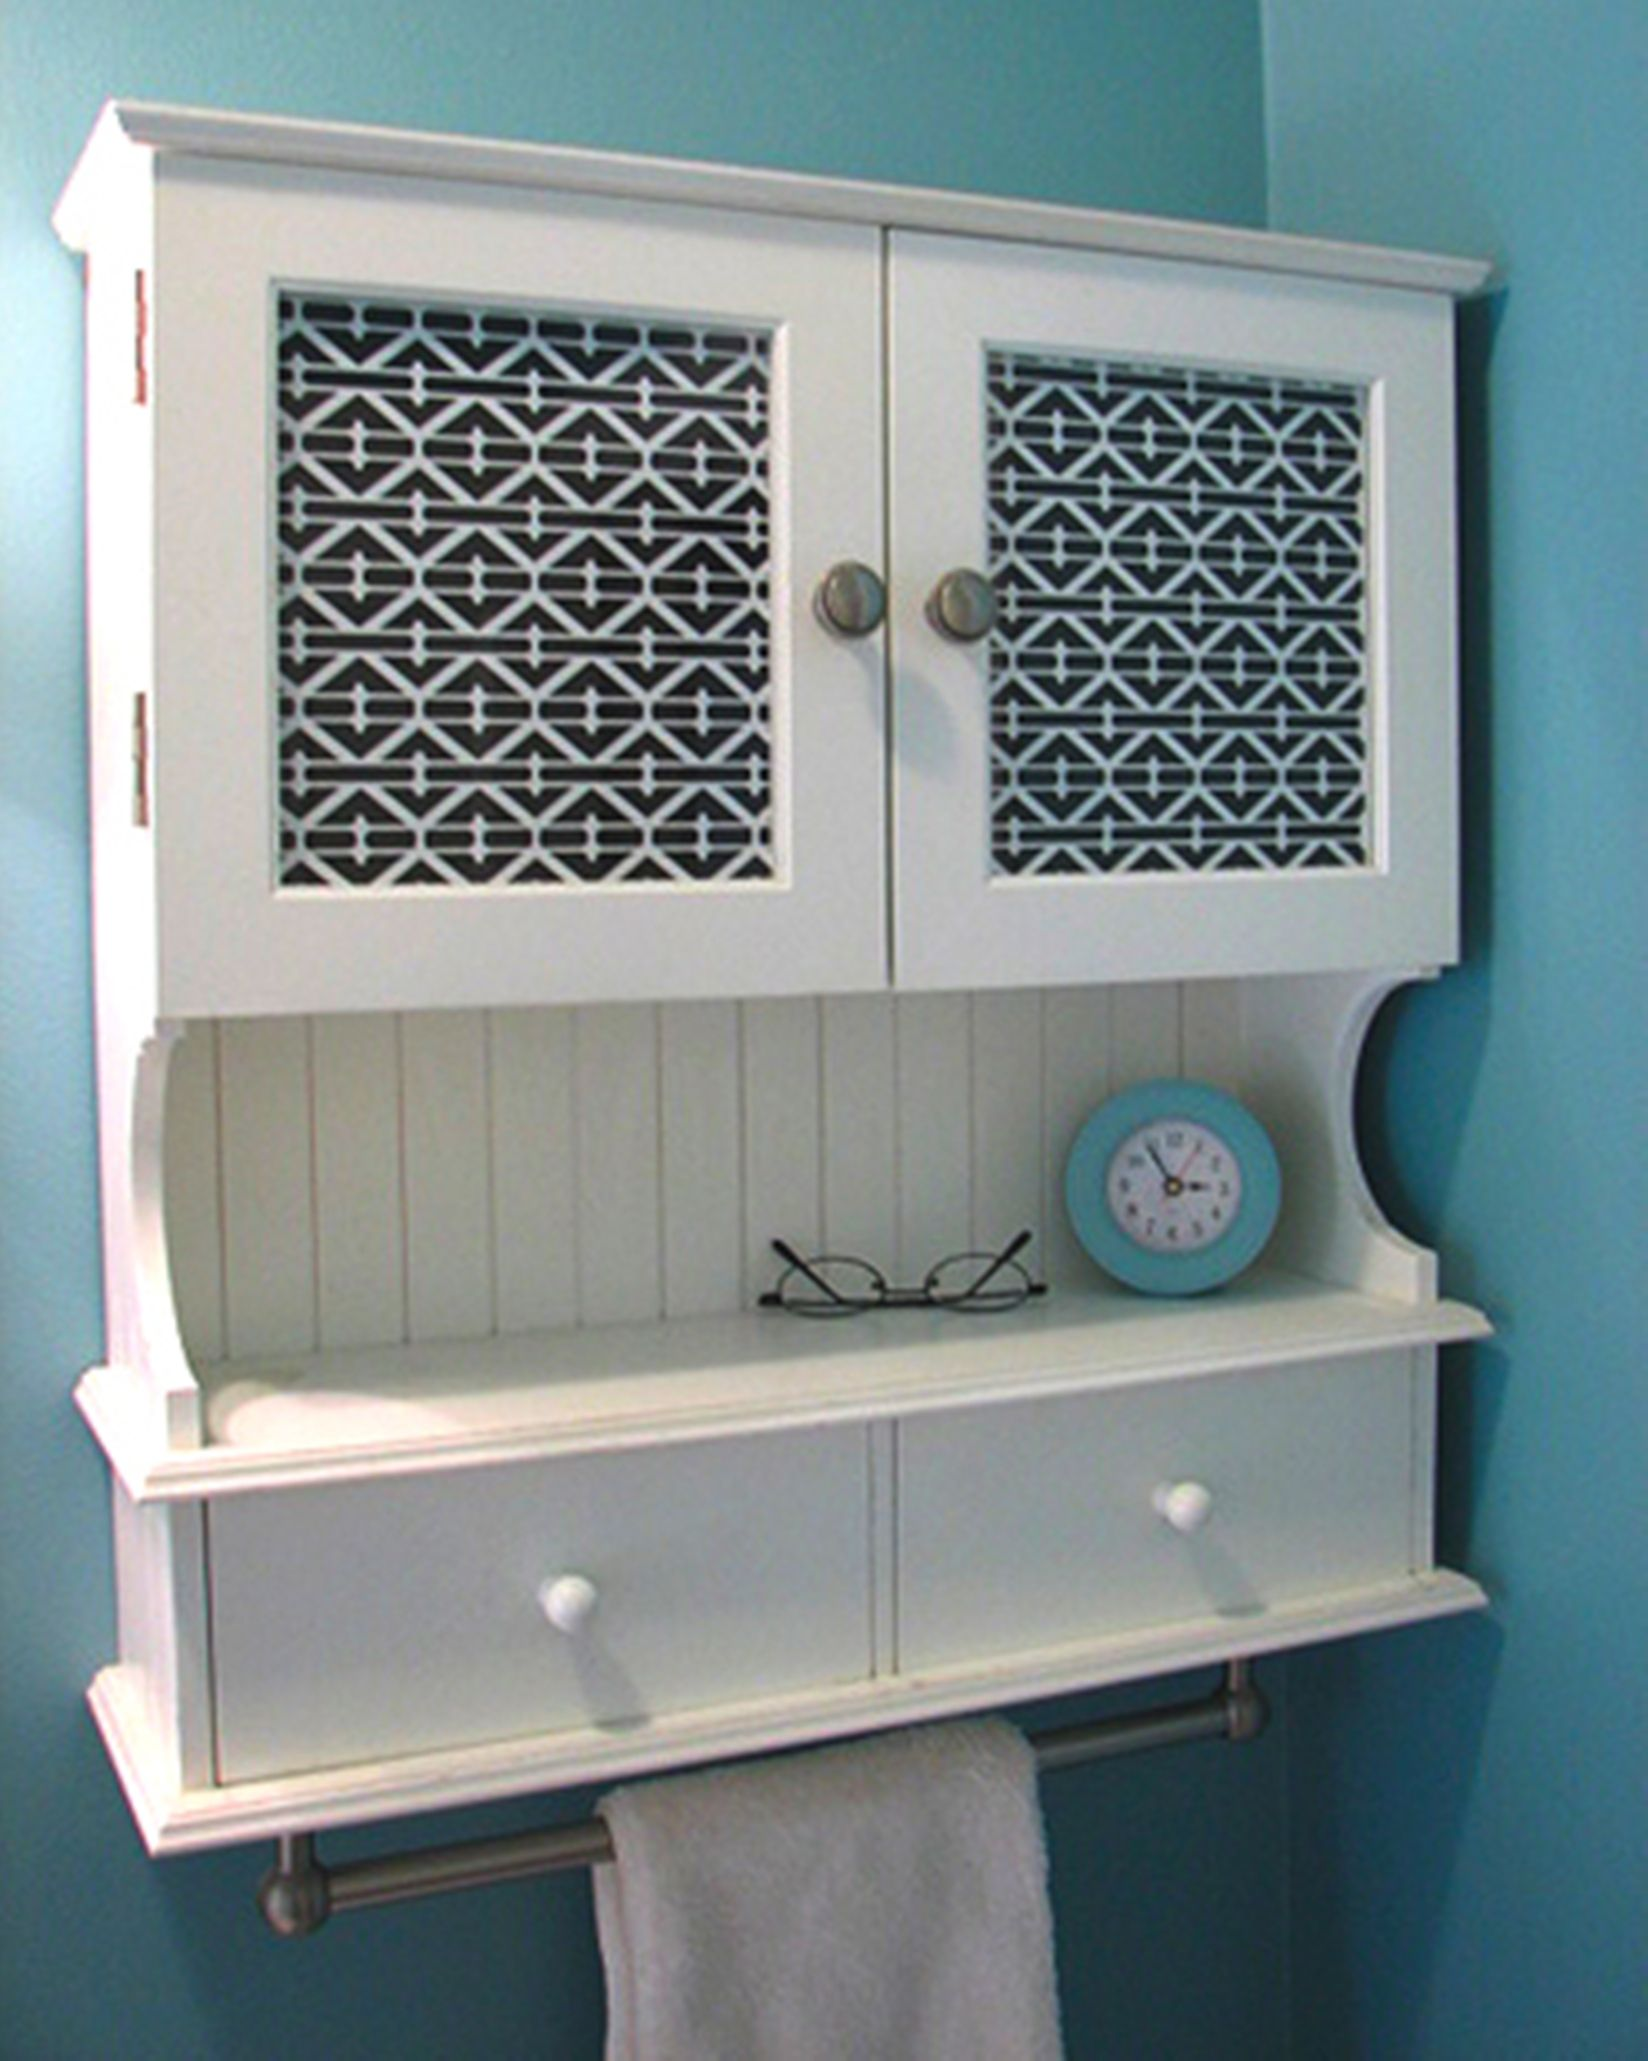 Bathroom White Wooden Shelves With Black And White Ethnic Pattern Storage Door Plus Drawers And